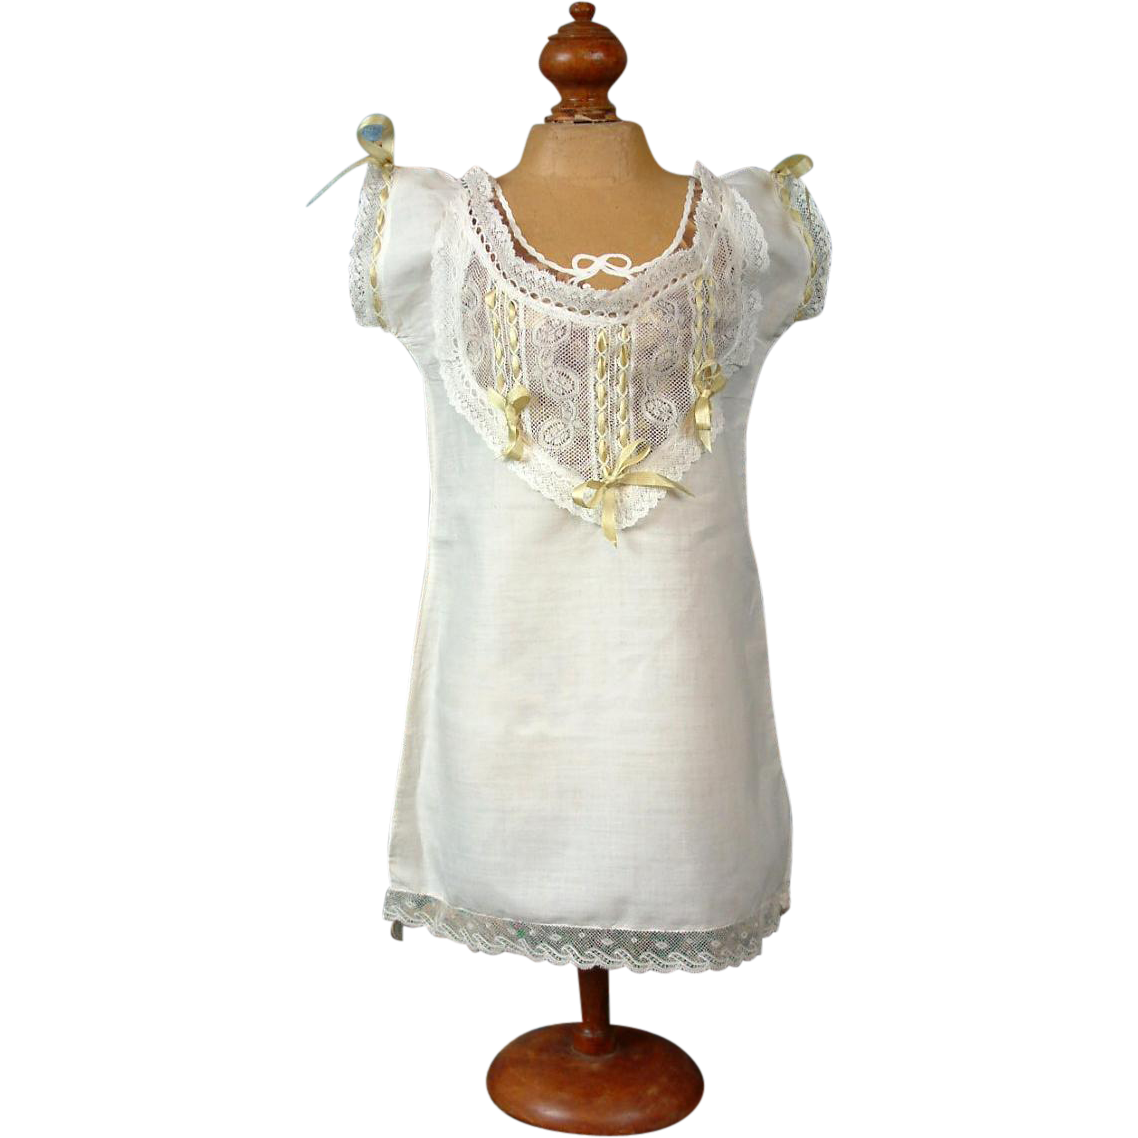 Extraordinary Antique Cotton Chemise c.1878-1882 w/ Exquisite Lace Front & Sage Insertion Ribbon for the Best Early Bebes!